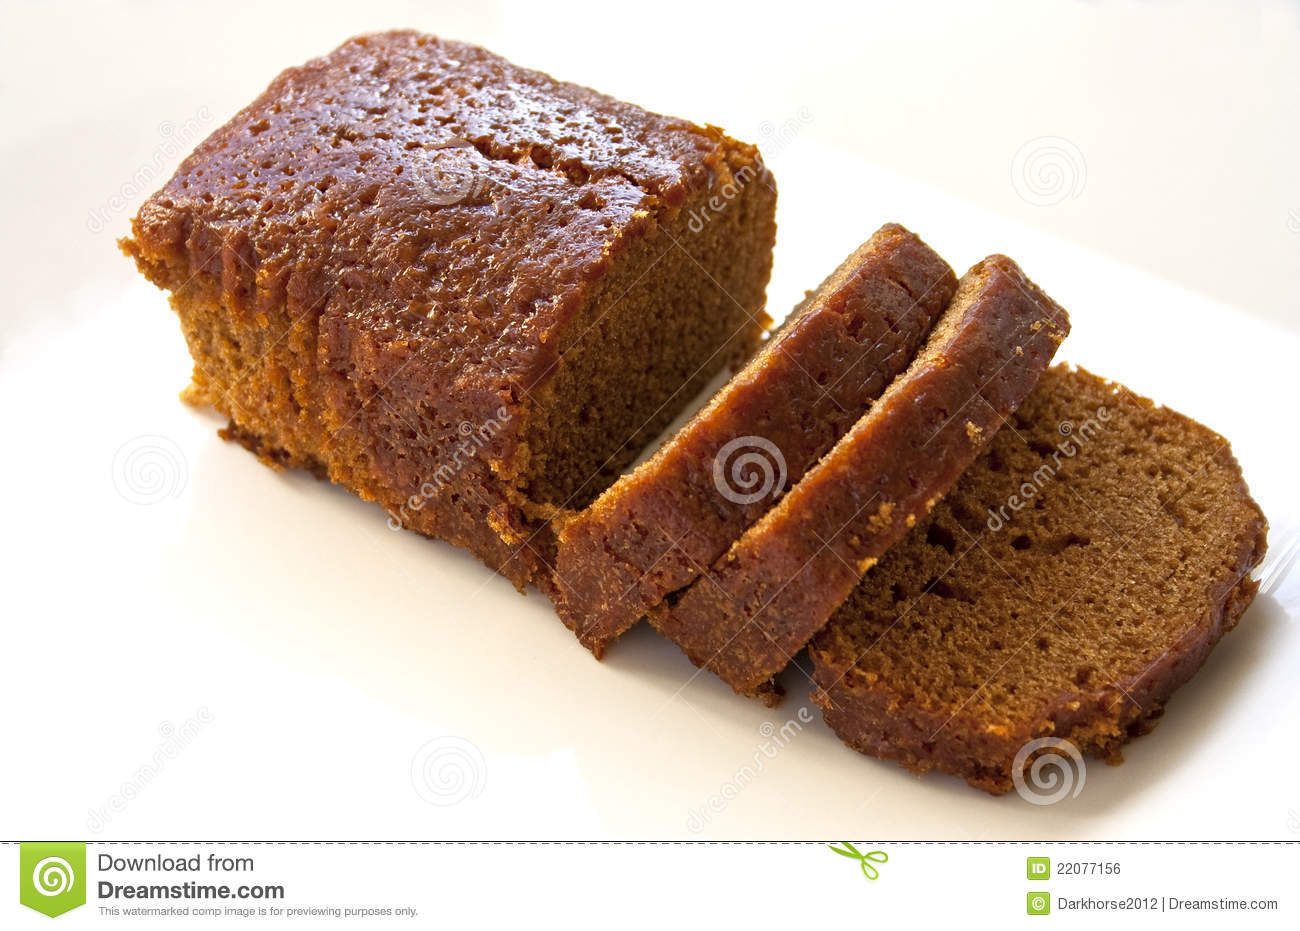 Ginger Cake Royalty Free Stock Image - Image: 22077156